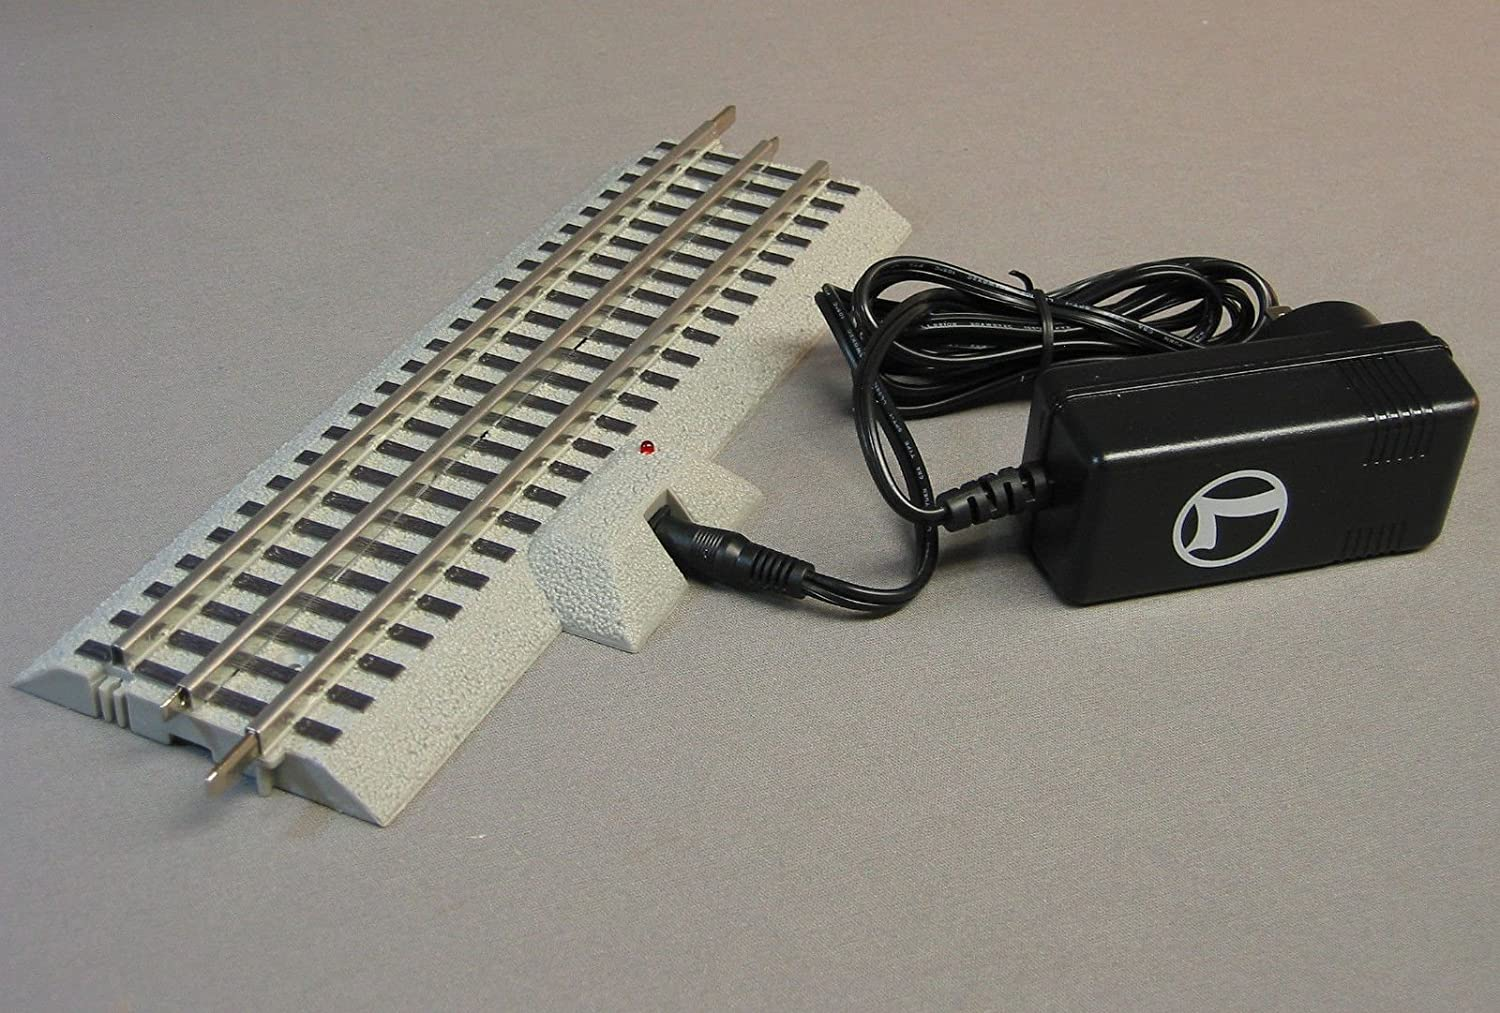 LIONEL O GAUGE FASTRACK 10 STRAIGHT POWER SUPPLY Station PACK RC LIONCHIEF SYSTEM track